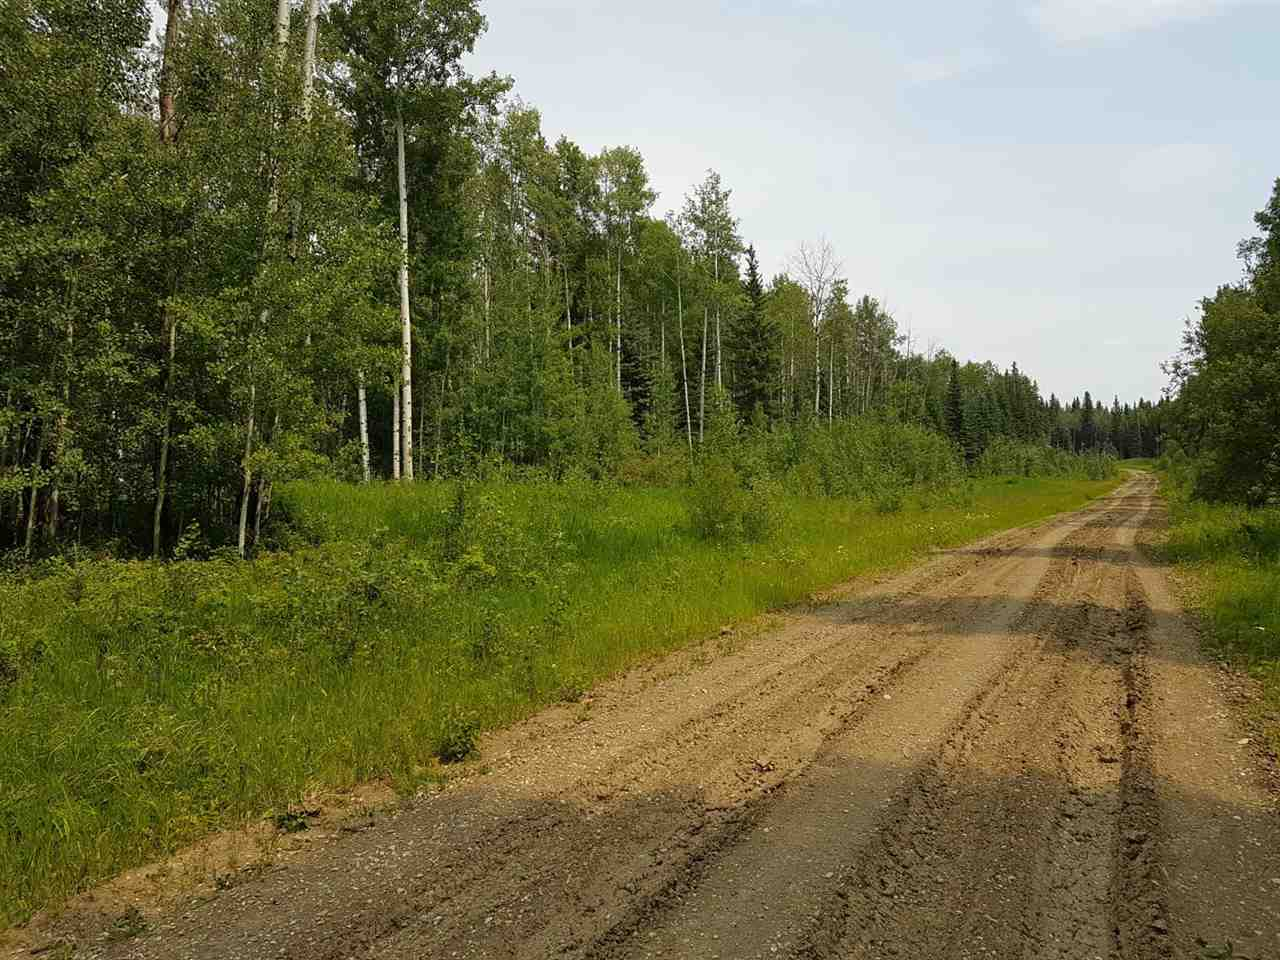 TWP RD 560 Range Road 155, at $185,000